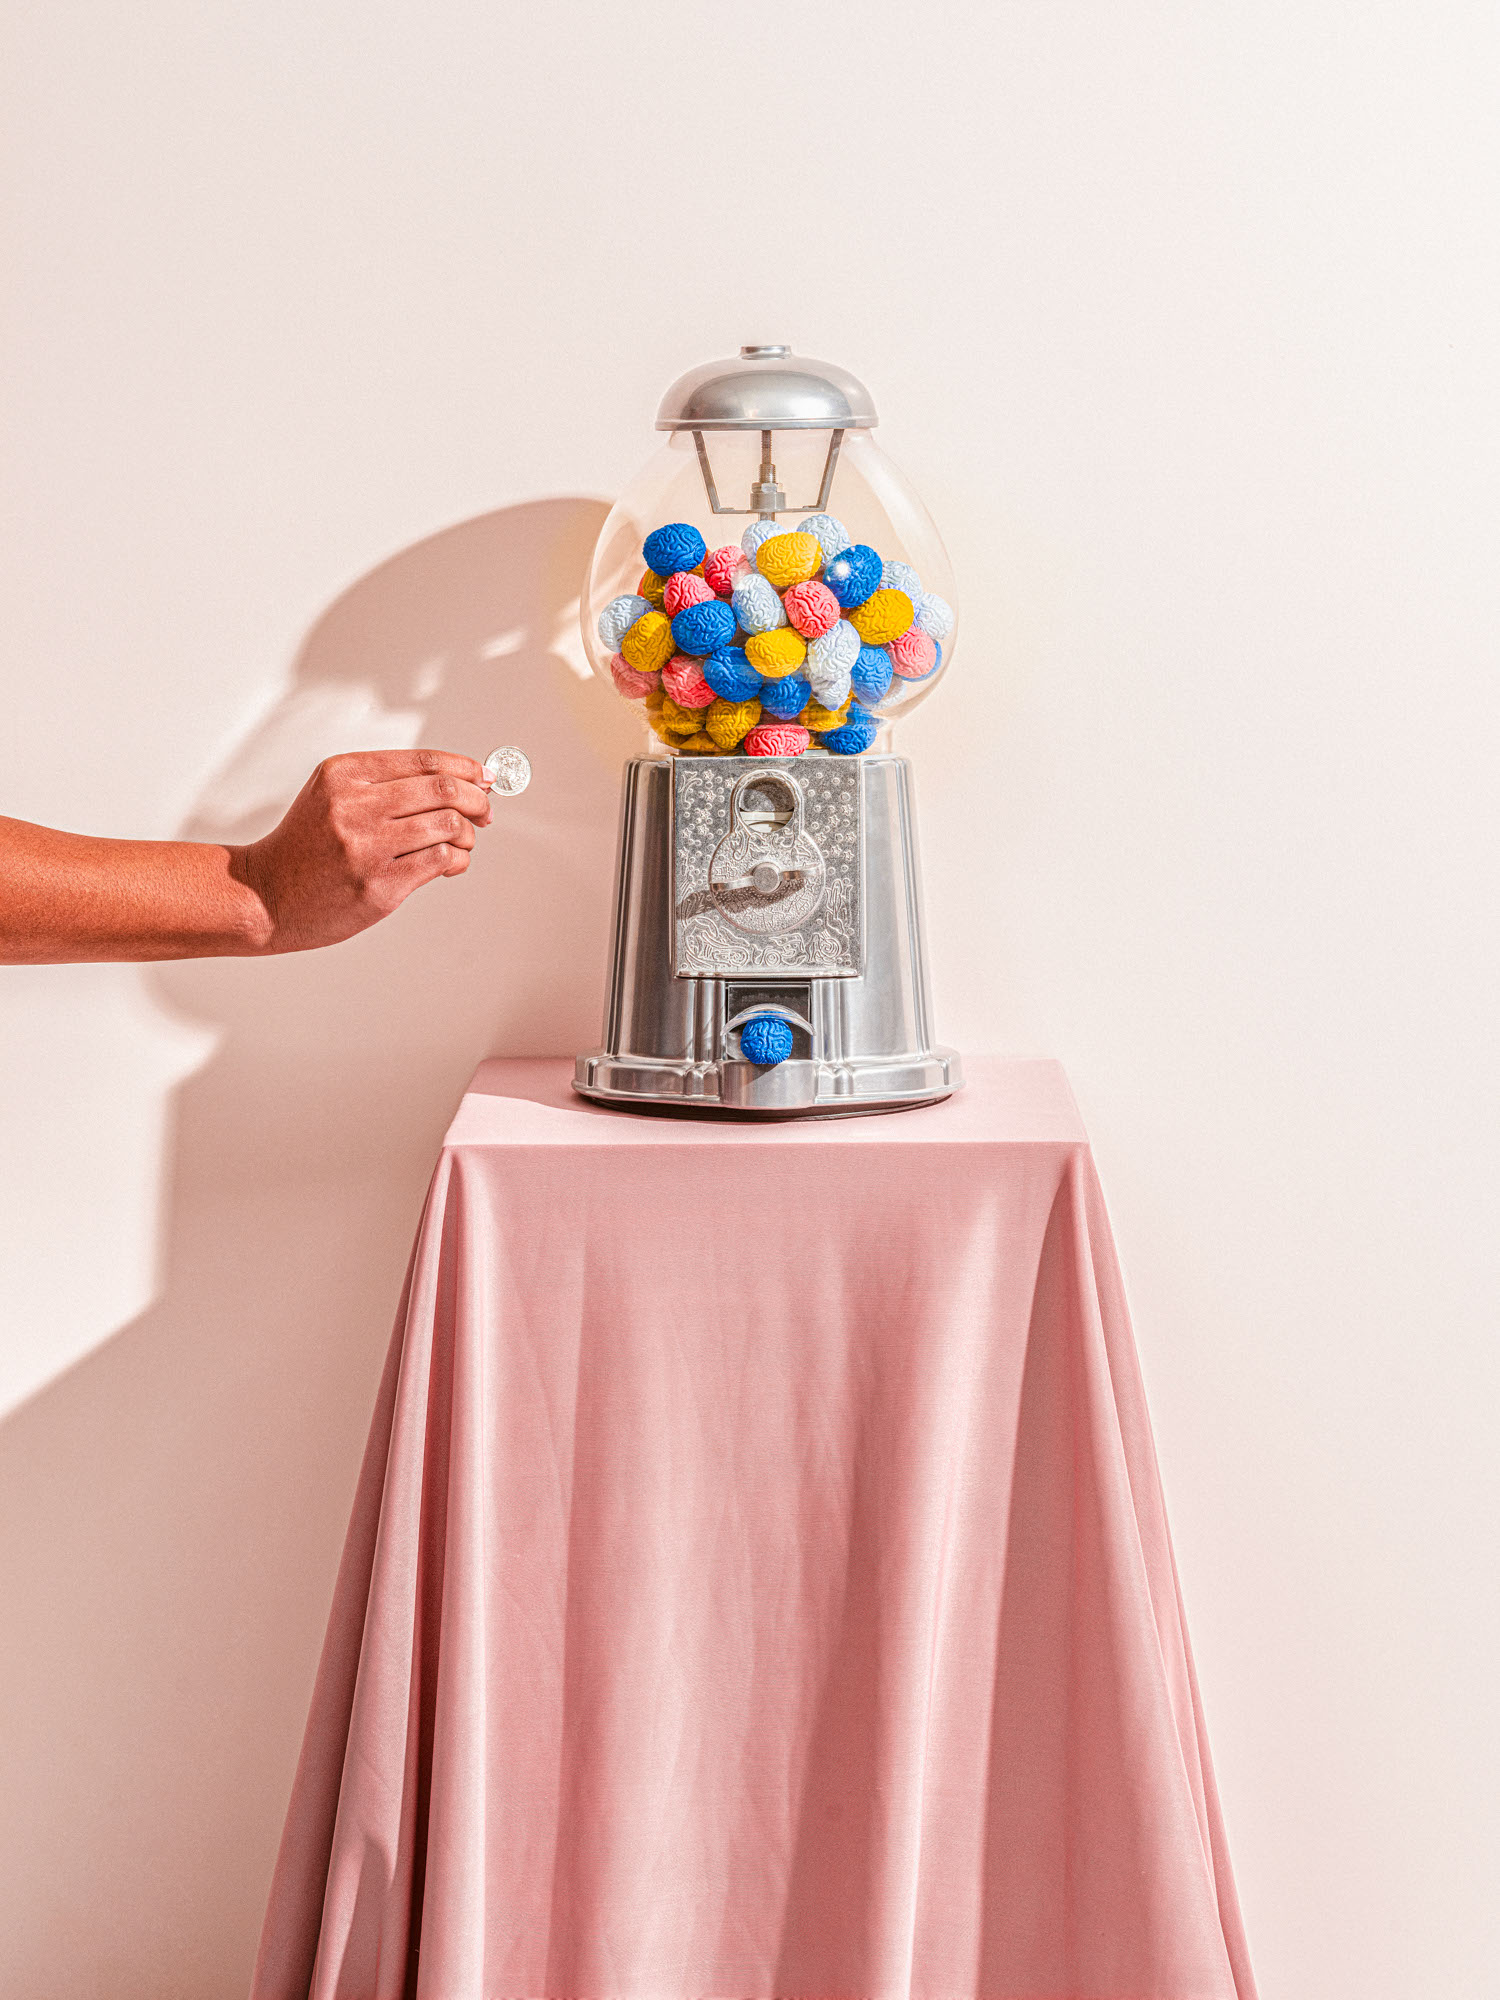 2020-02-21-Degreed-GumballMachine-1010-Retouched